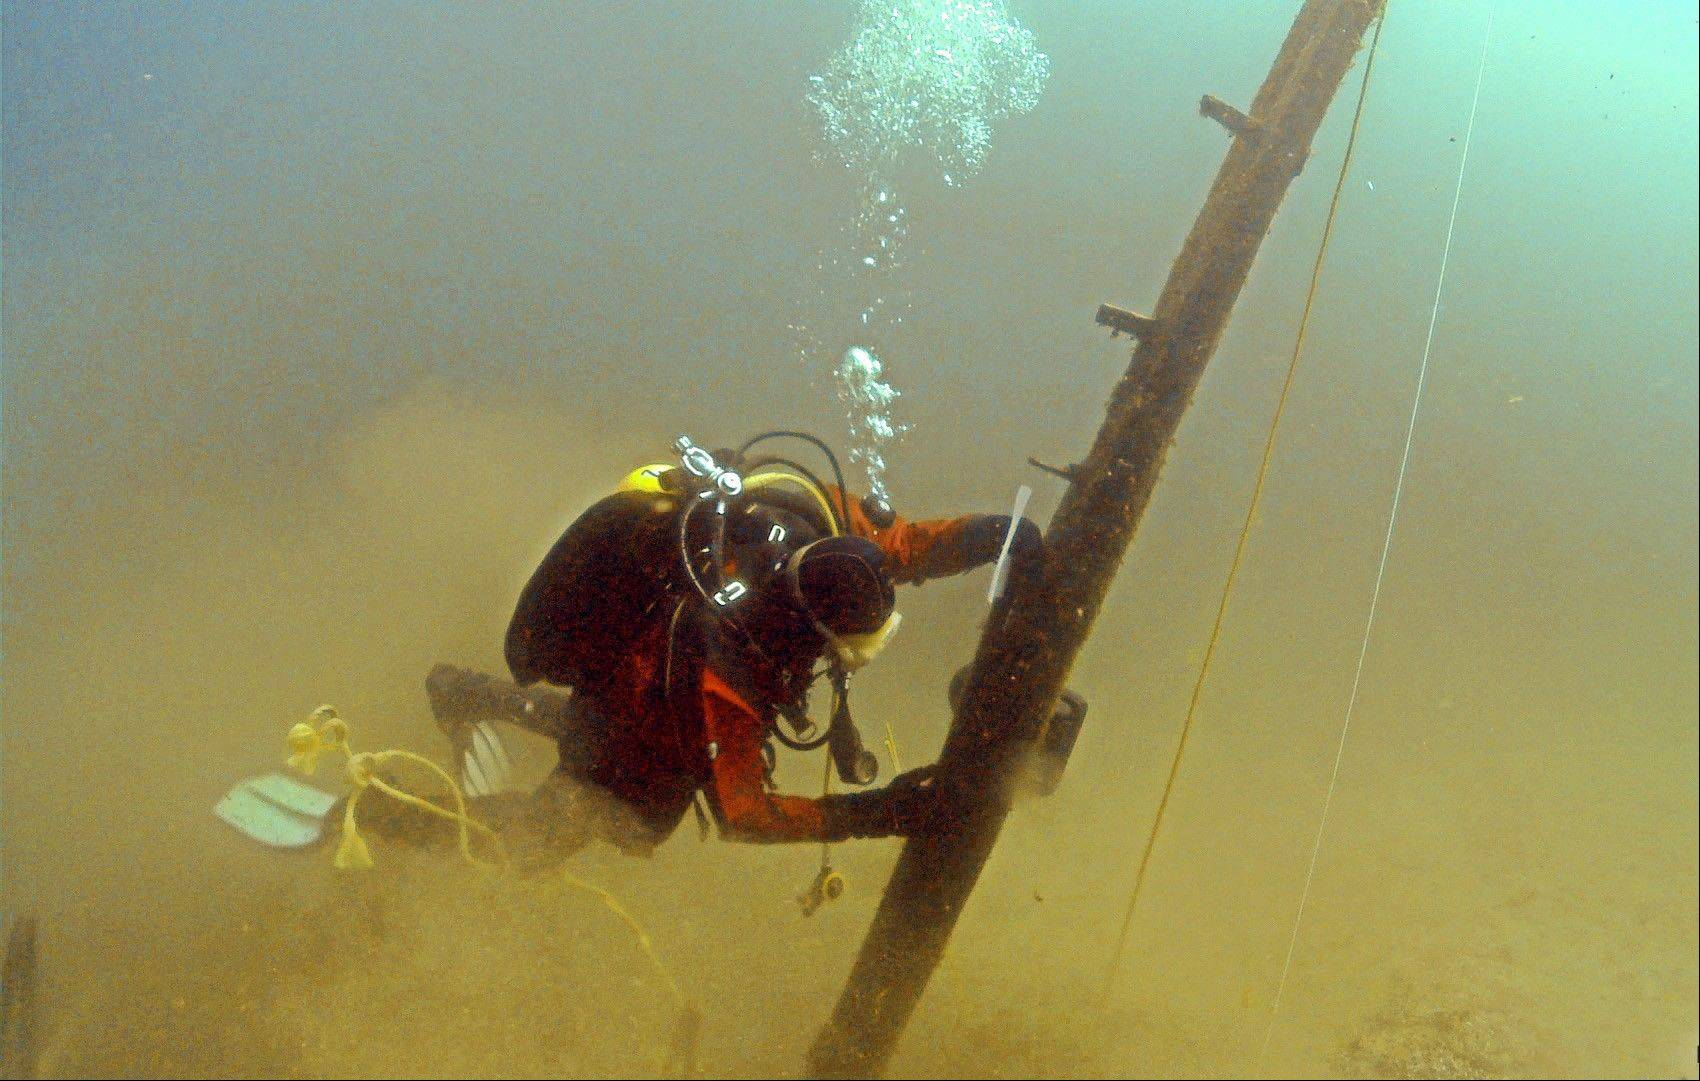 Diver Jim Nowka of Great Lakes Exploration Group inspects a wooden beam extending from the floor of Lake Michigan that experts believe may be part of the Griffin, a ship that sank in 1679. Crews are digging a pit at the base of the beam to see if it�s attached to a buried ship.